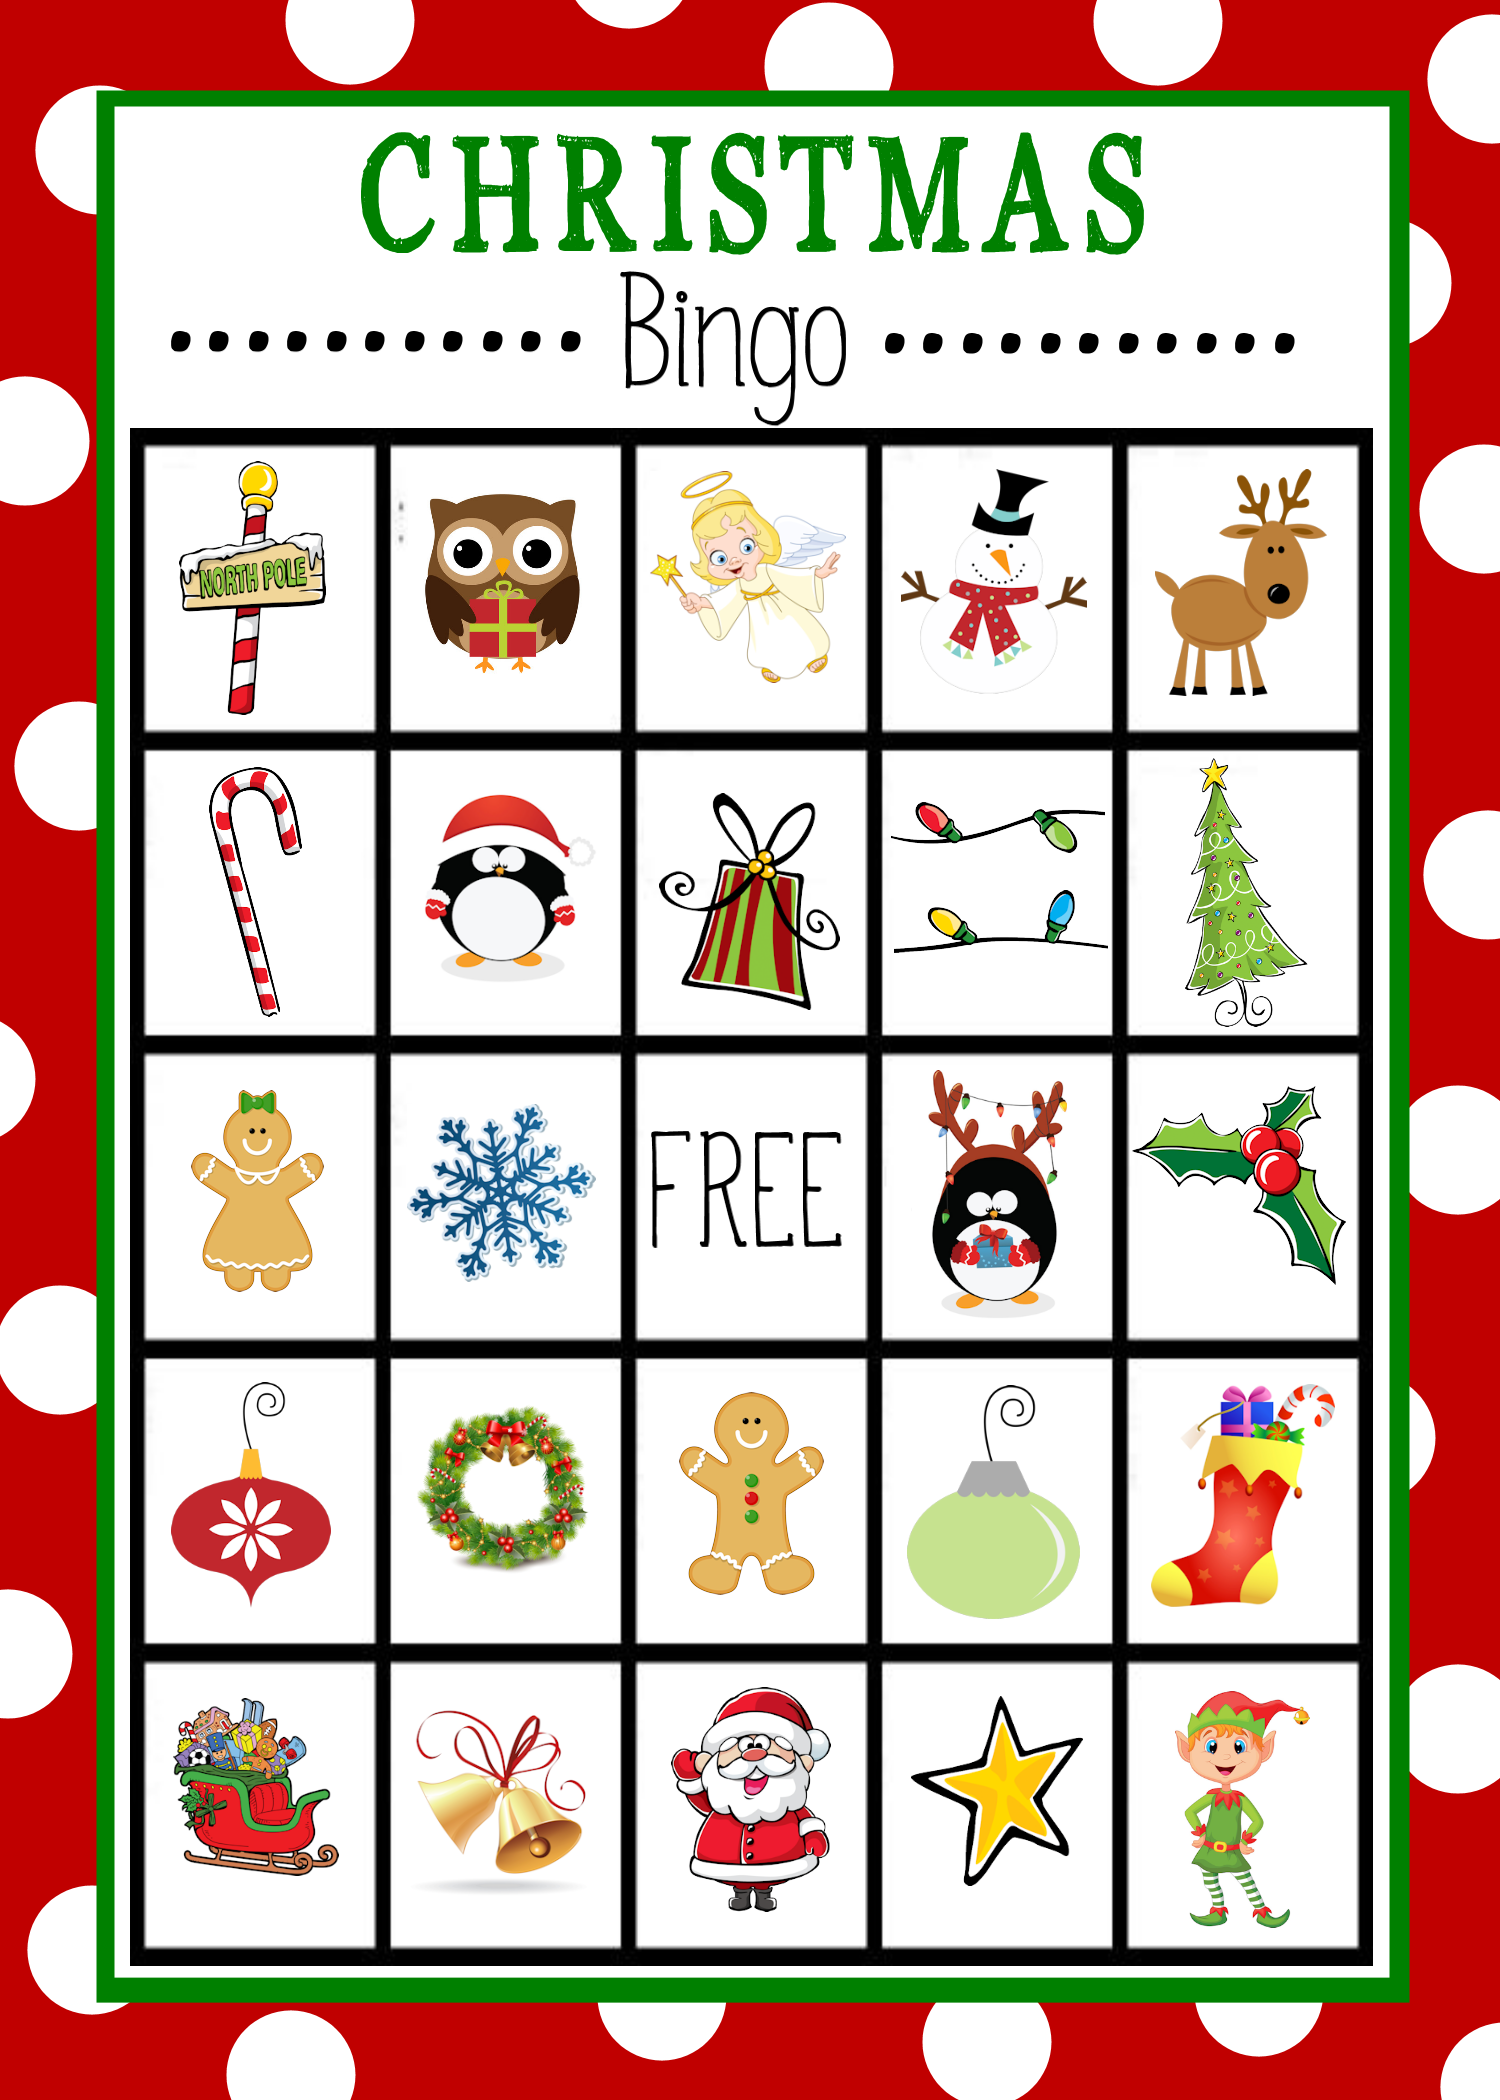 Free Printable Christmas Bingo - ClipArt Best - ClipArt Best